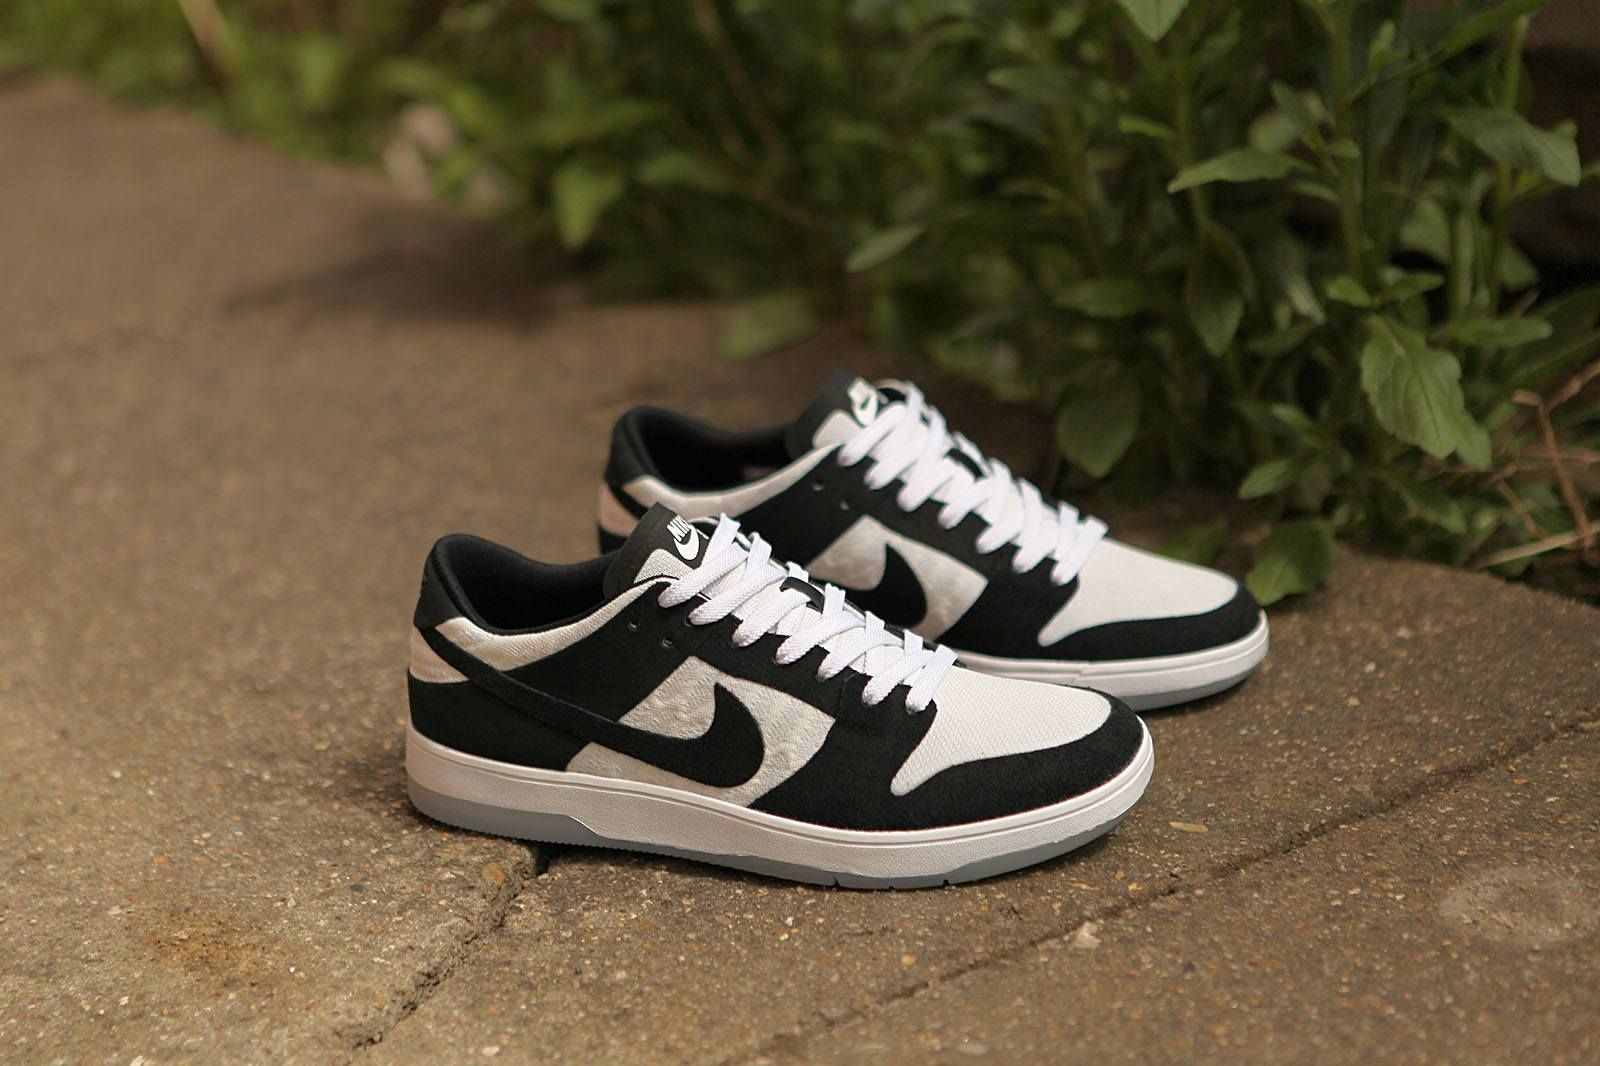 Nike SB Dunk Low Elite Oskar Rozenberg Black httpswwwpopname